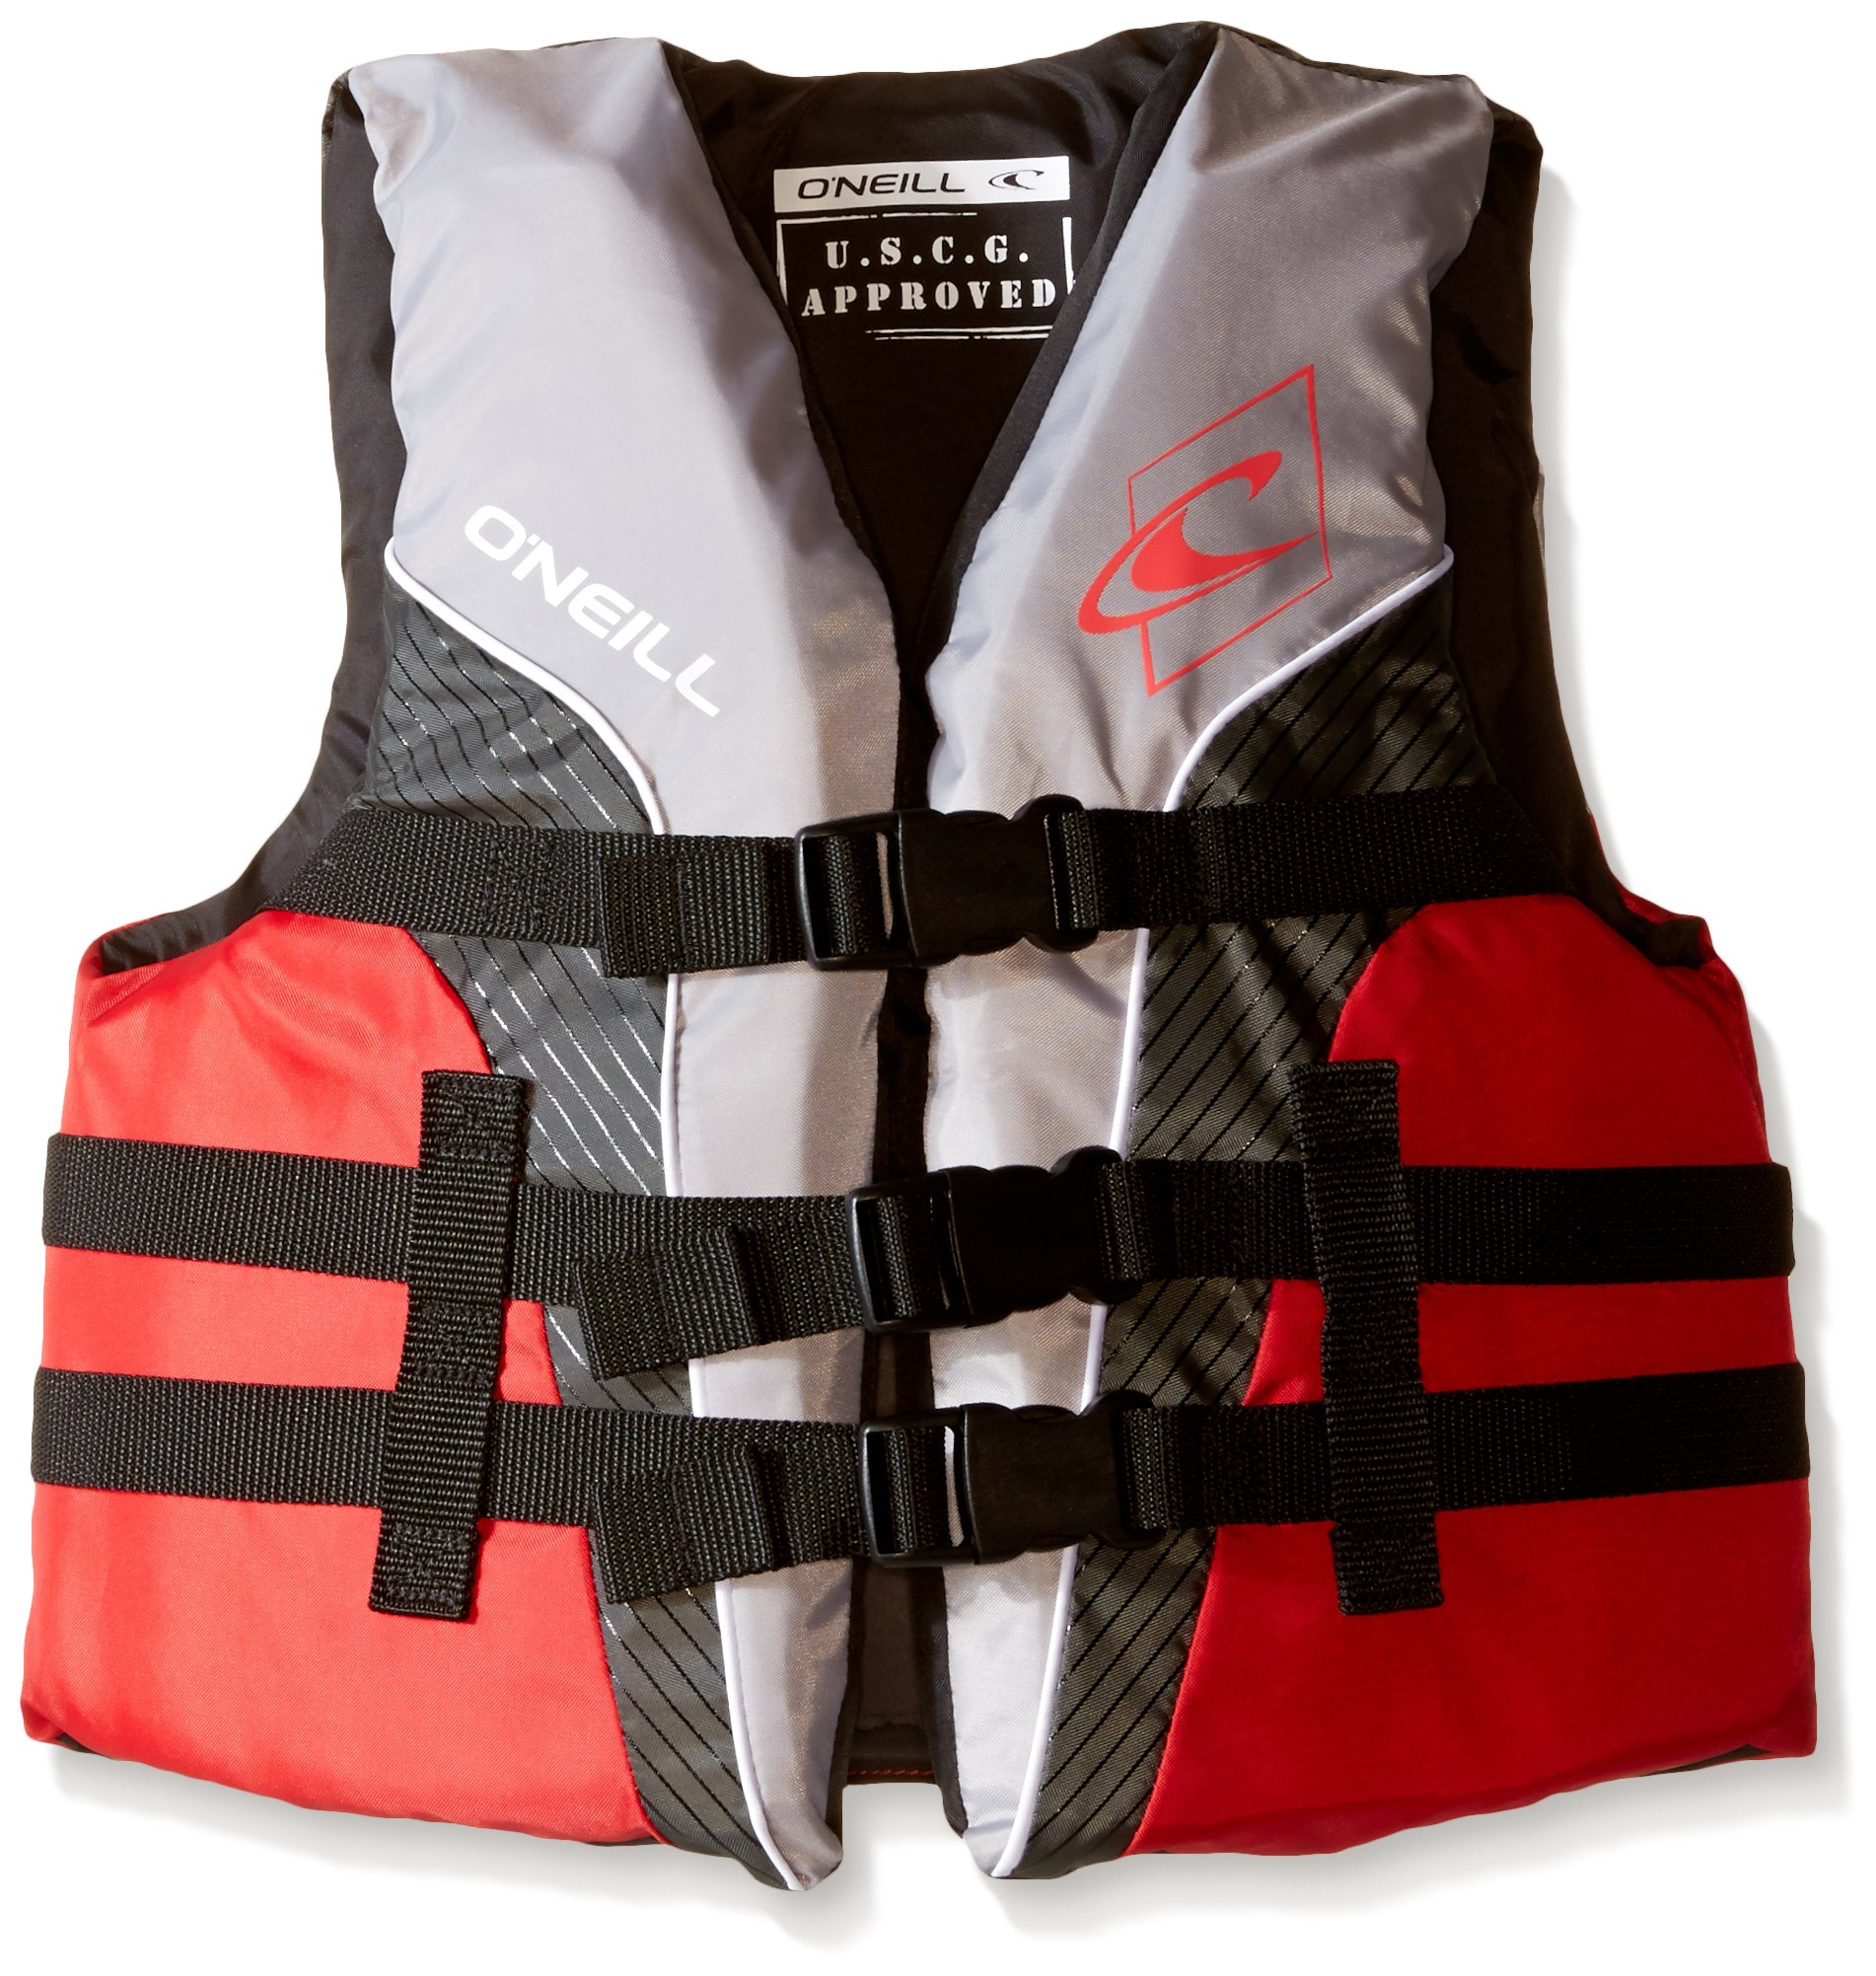 O'Neill   Youth SuperLite USCG Life Vest,Smoke/Graphite/Red/White,50-90 lbs